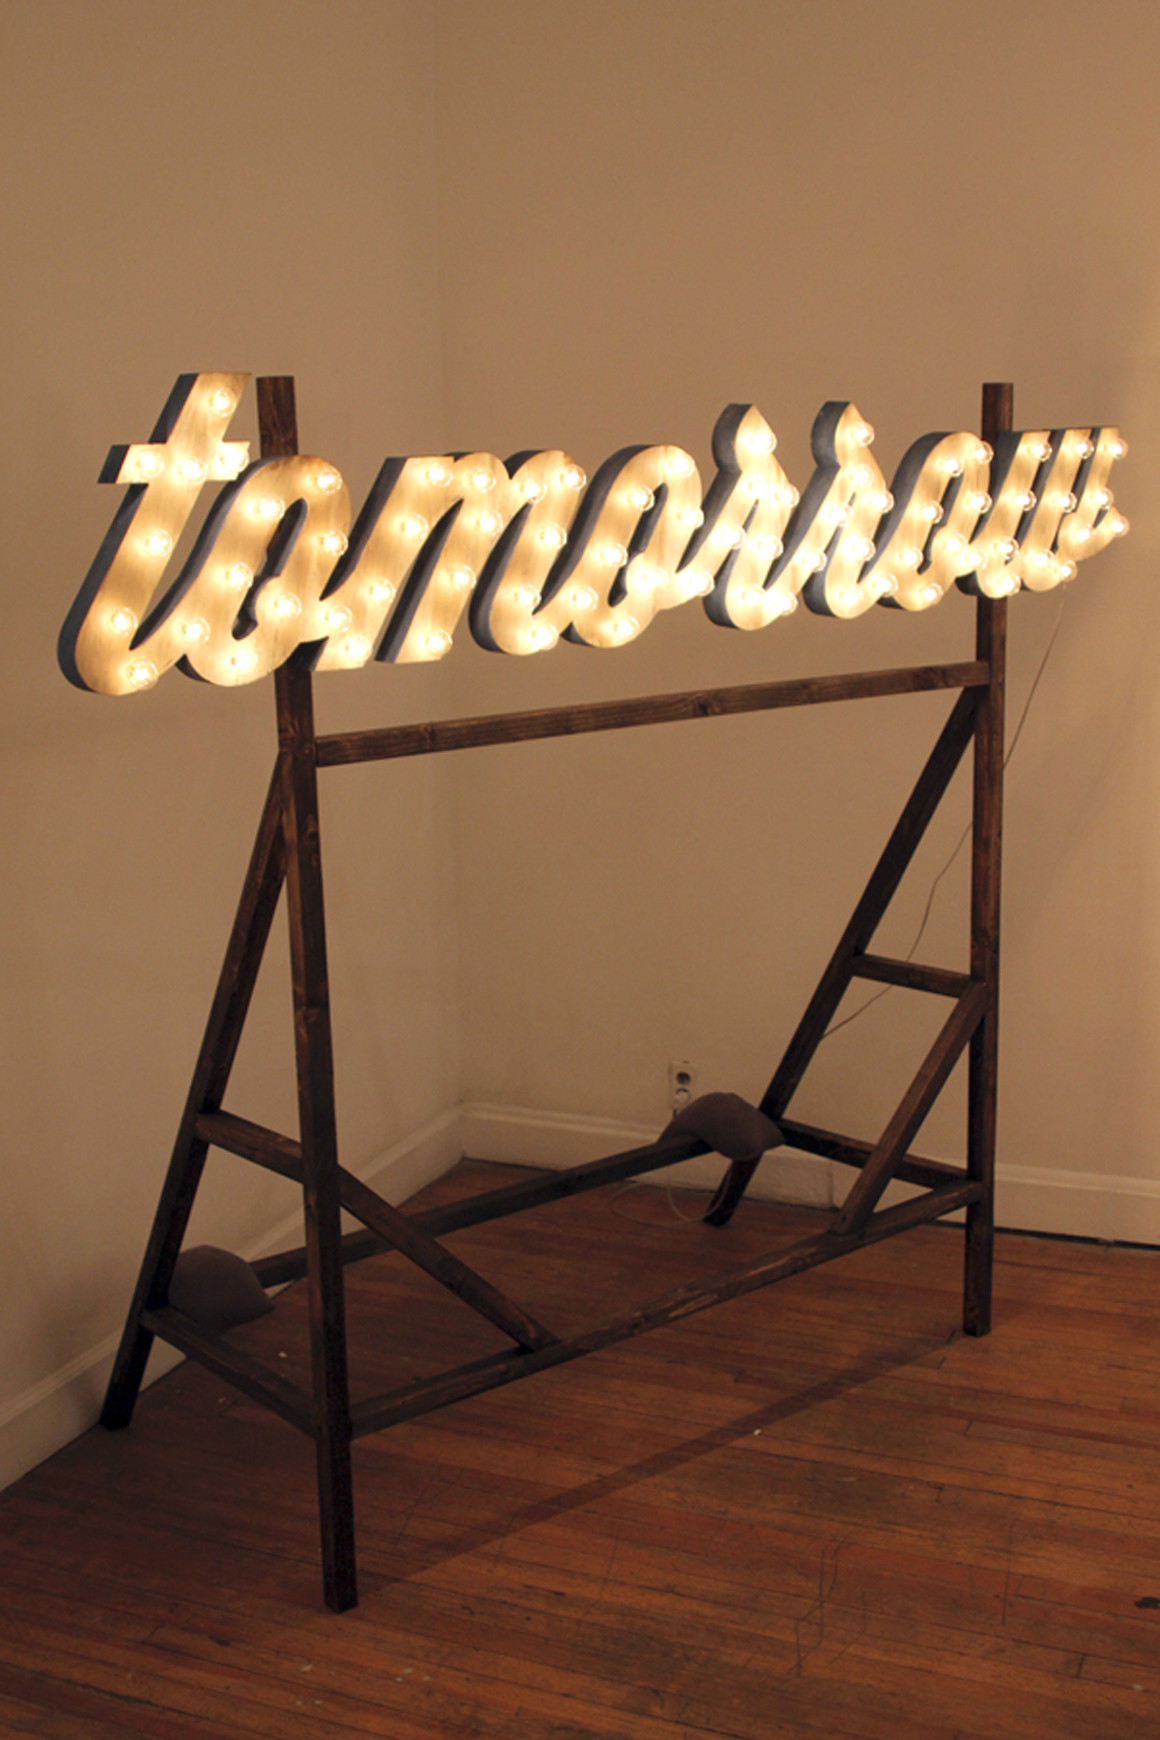 """<p><span class=""""name"""">Ryan Everson</span><br><em>Tomorrow</em><span class='media'>MDF, lights, wood scaffolding</span>18 x 83 x 32 in (45.7 x 210.8 x 81.3 cm) Letters Only<br>2013<br><a class='inquire' href='mailto:info@gildargallery.com?subject=Artwork Inquiry REVE0008&body=I am interested in finding out more about Tomorrow by Ryan Everson'>Inquire</a></p>"""